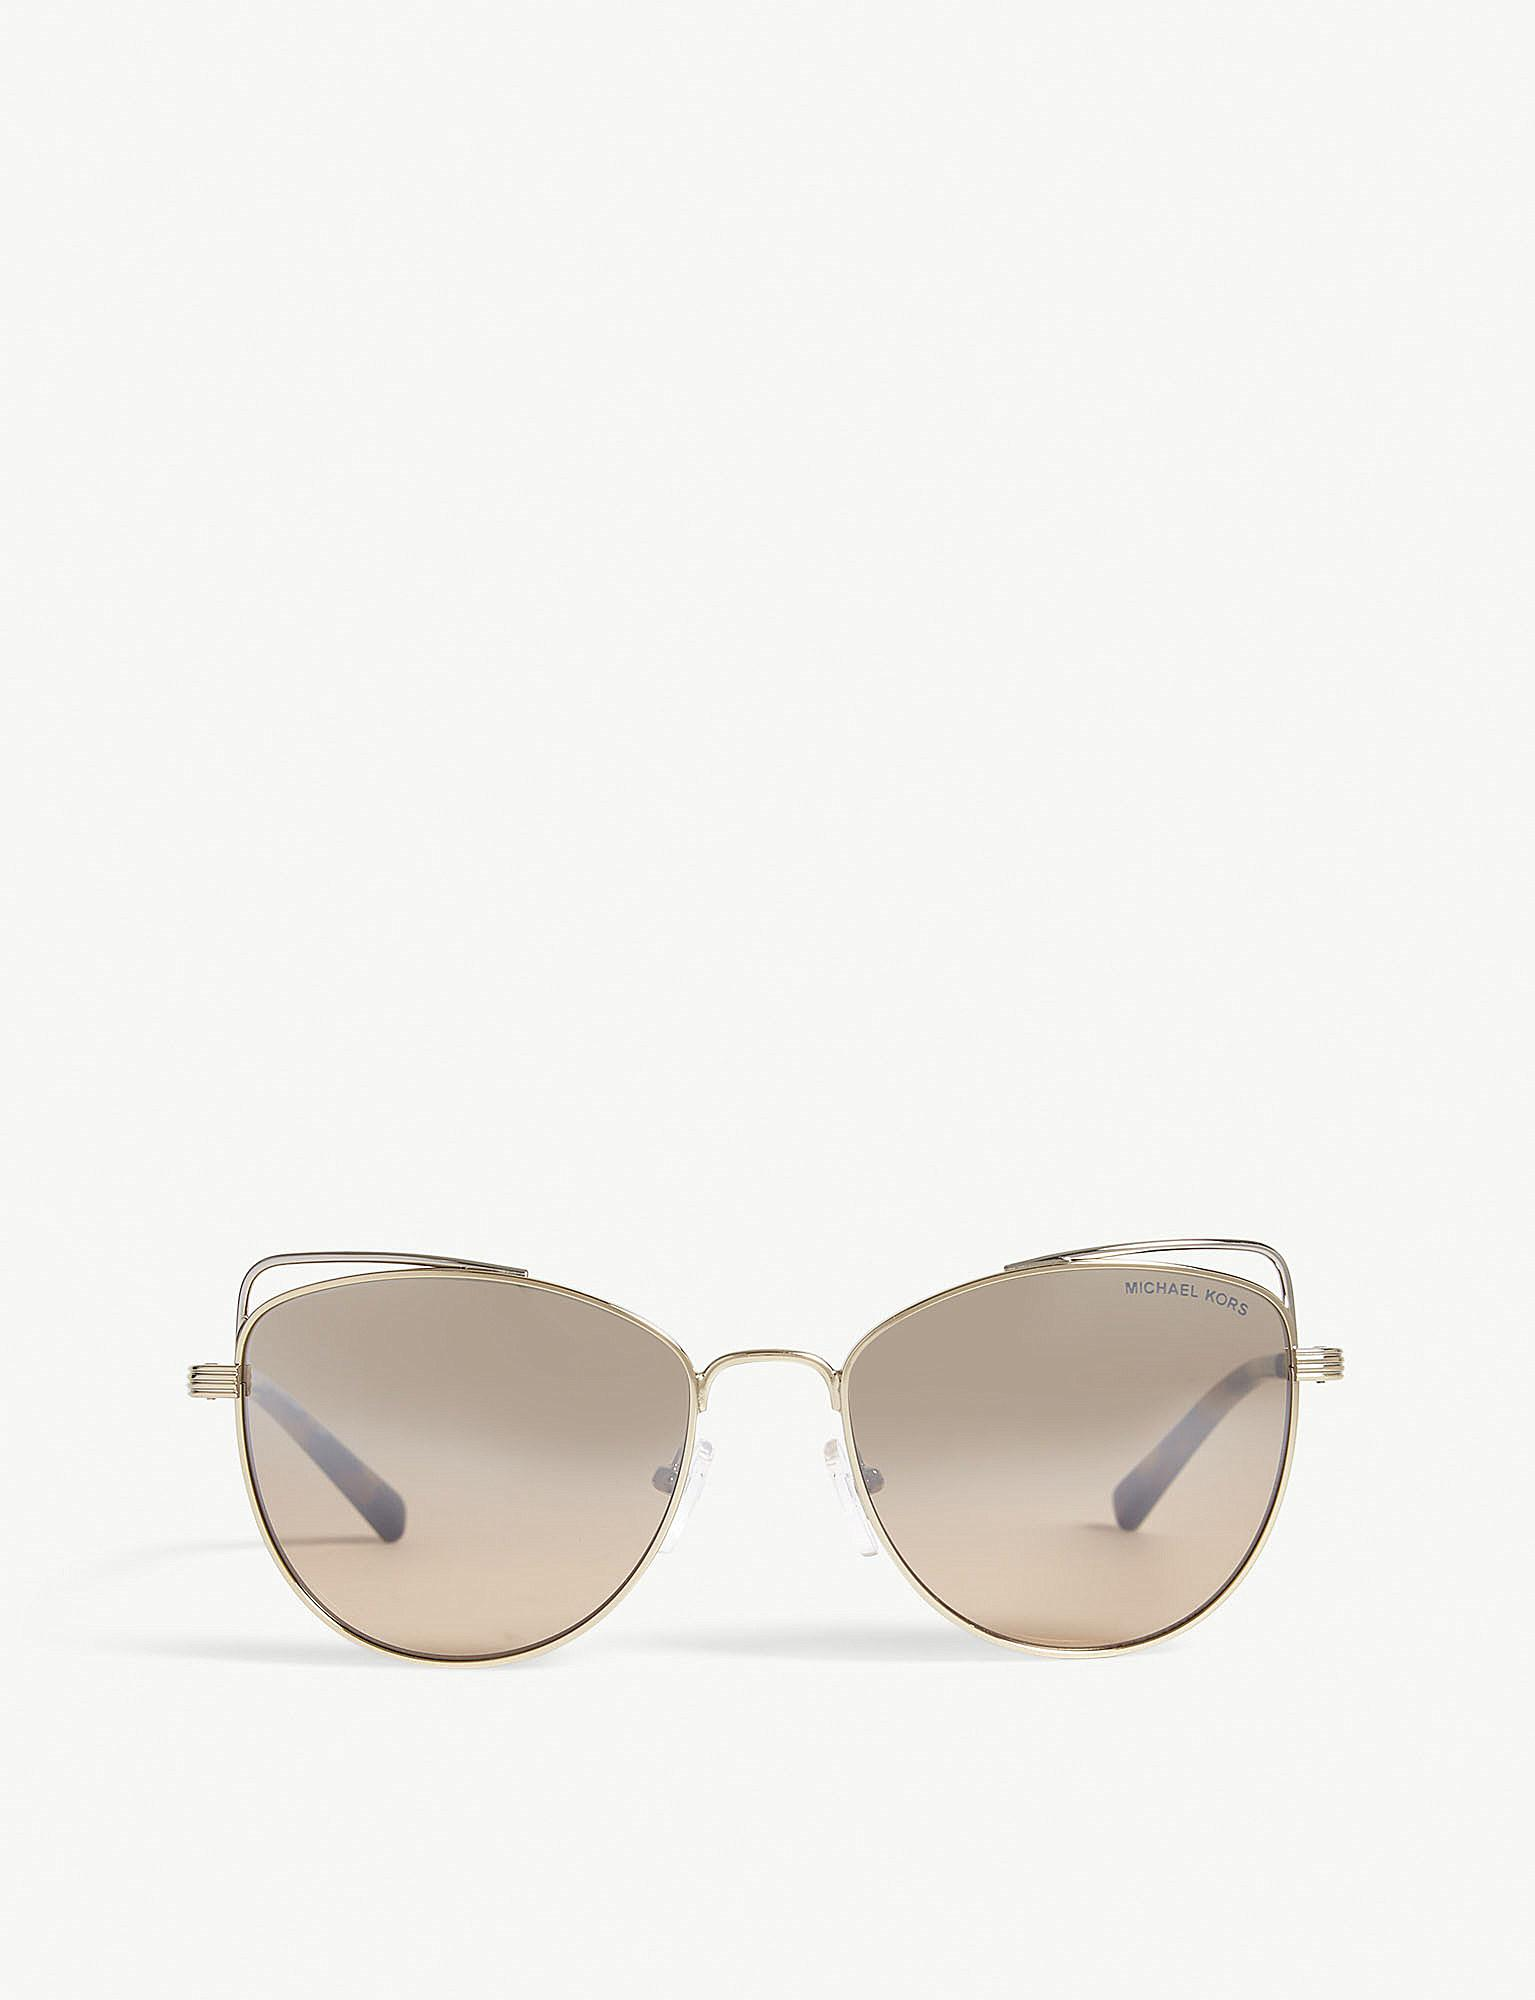 af9ed7133cc9 Michael Kors - Metallic Light Gold St. Lucia Cat's Eye Sunglasses Mk1035 -  Lyst. View fullscreen